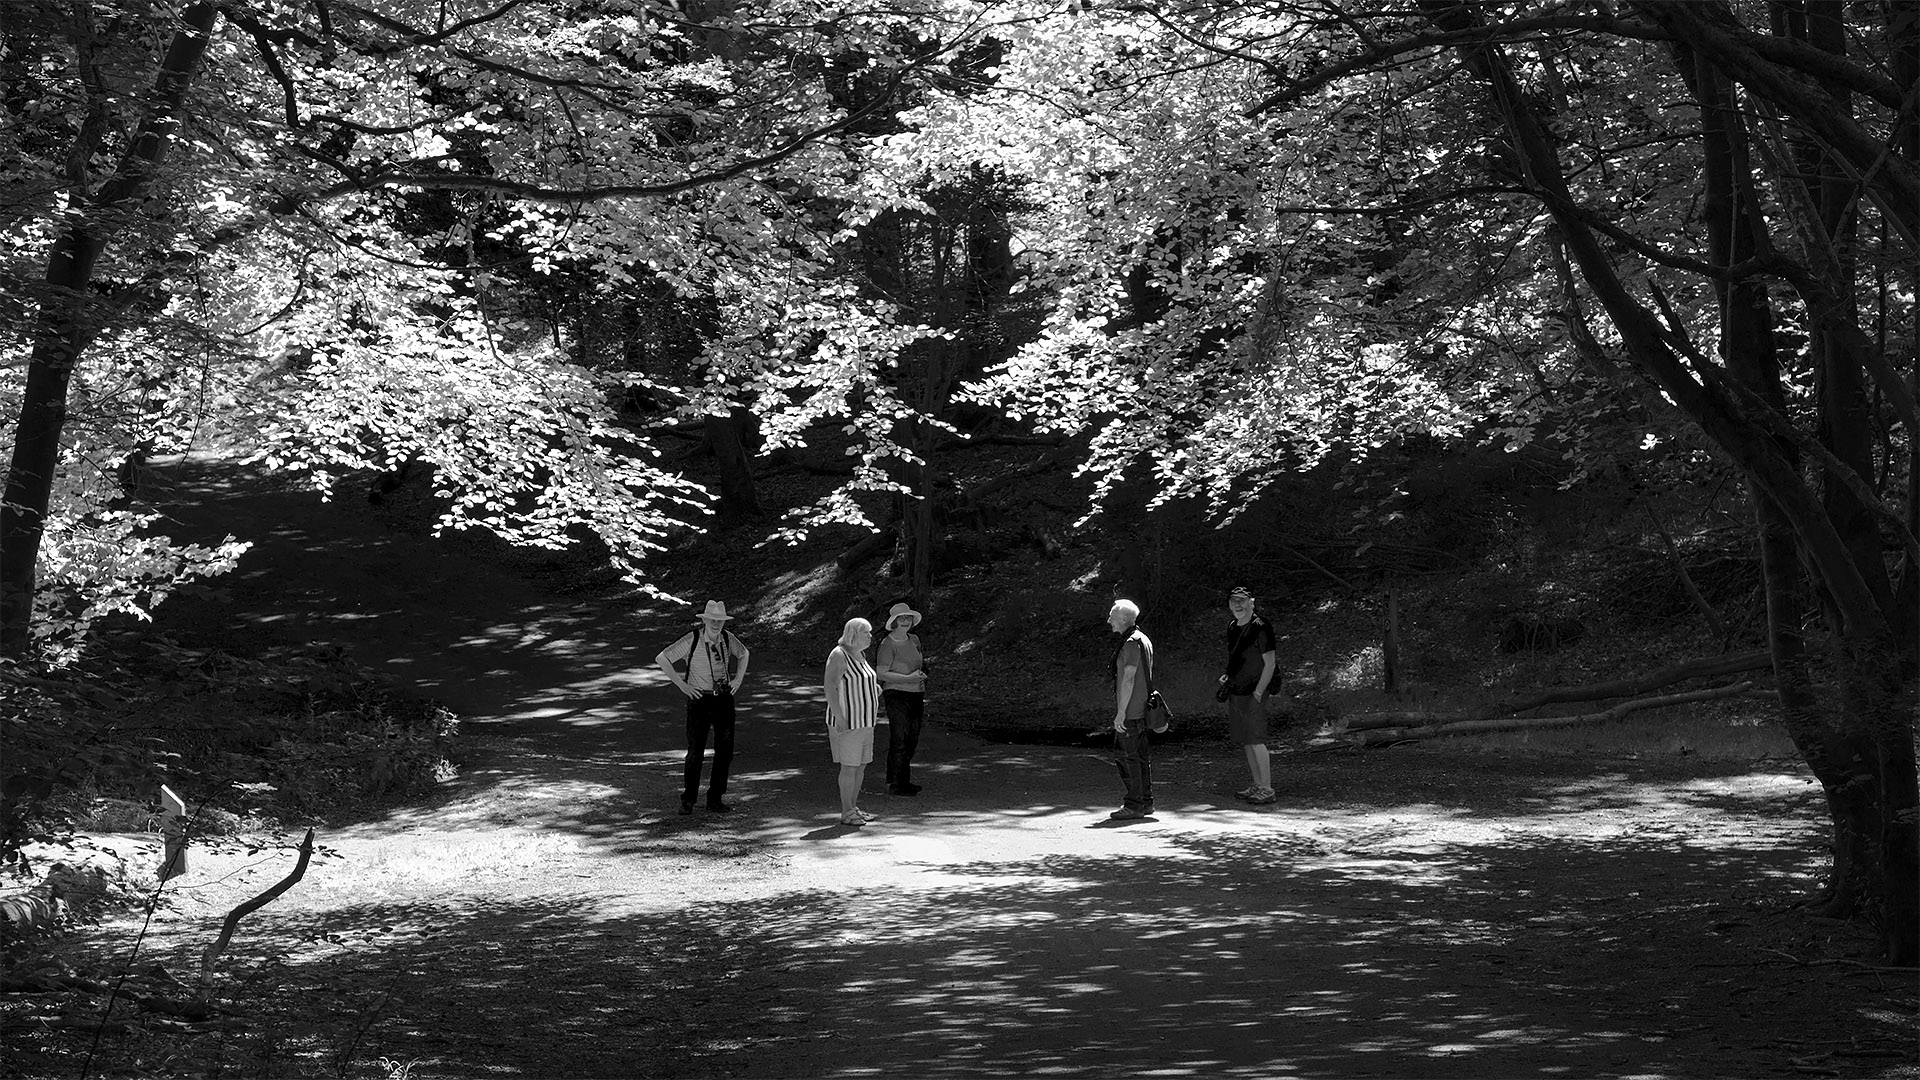 Photography group visits Burnham Beeches